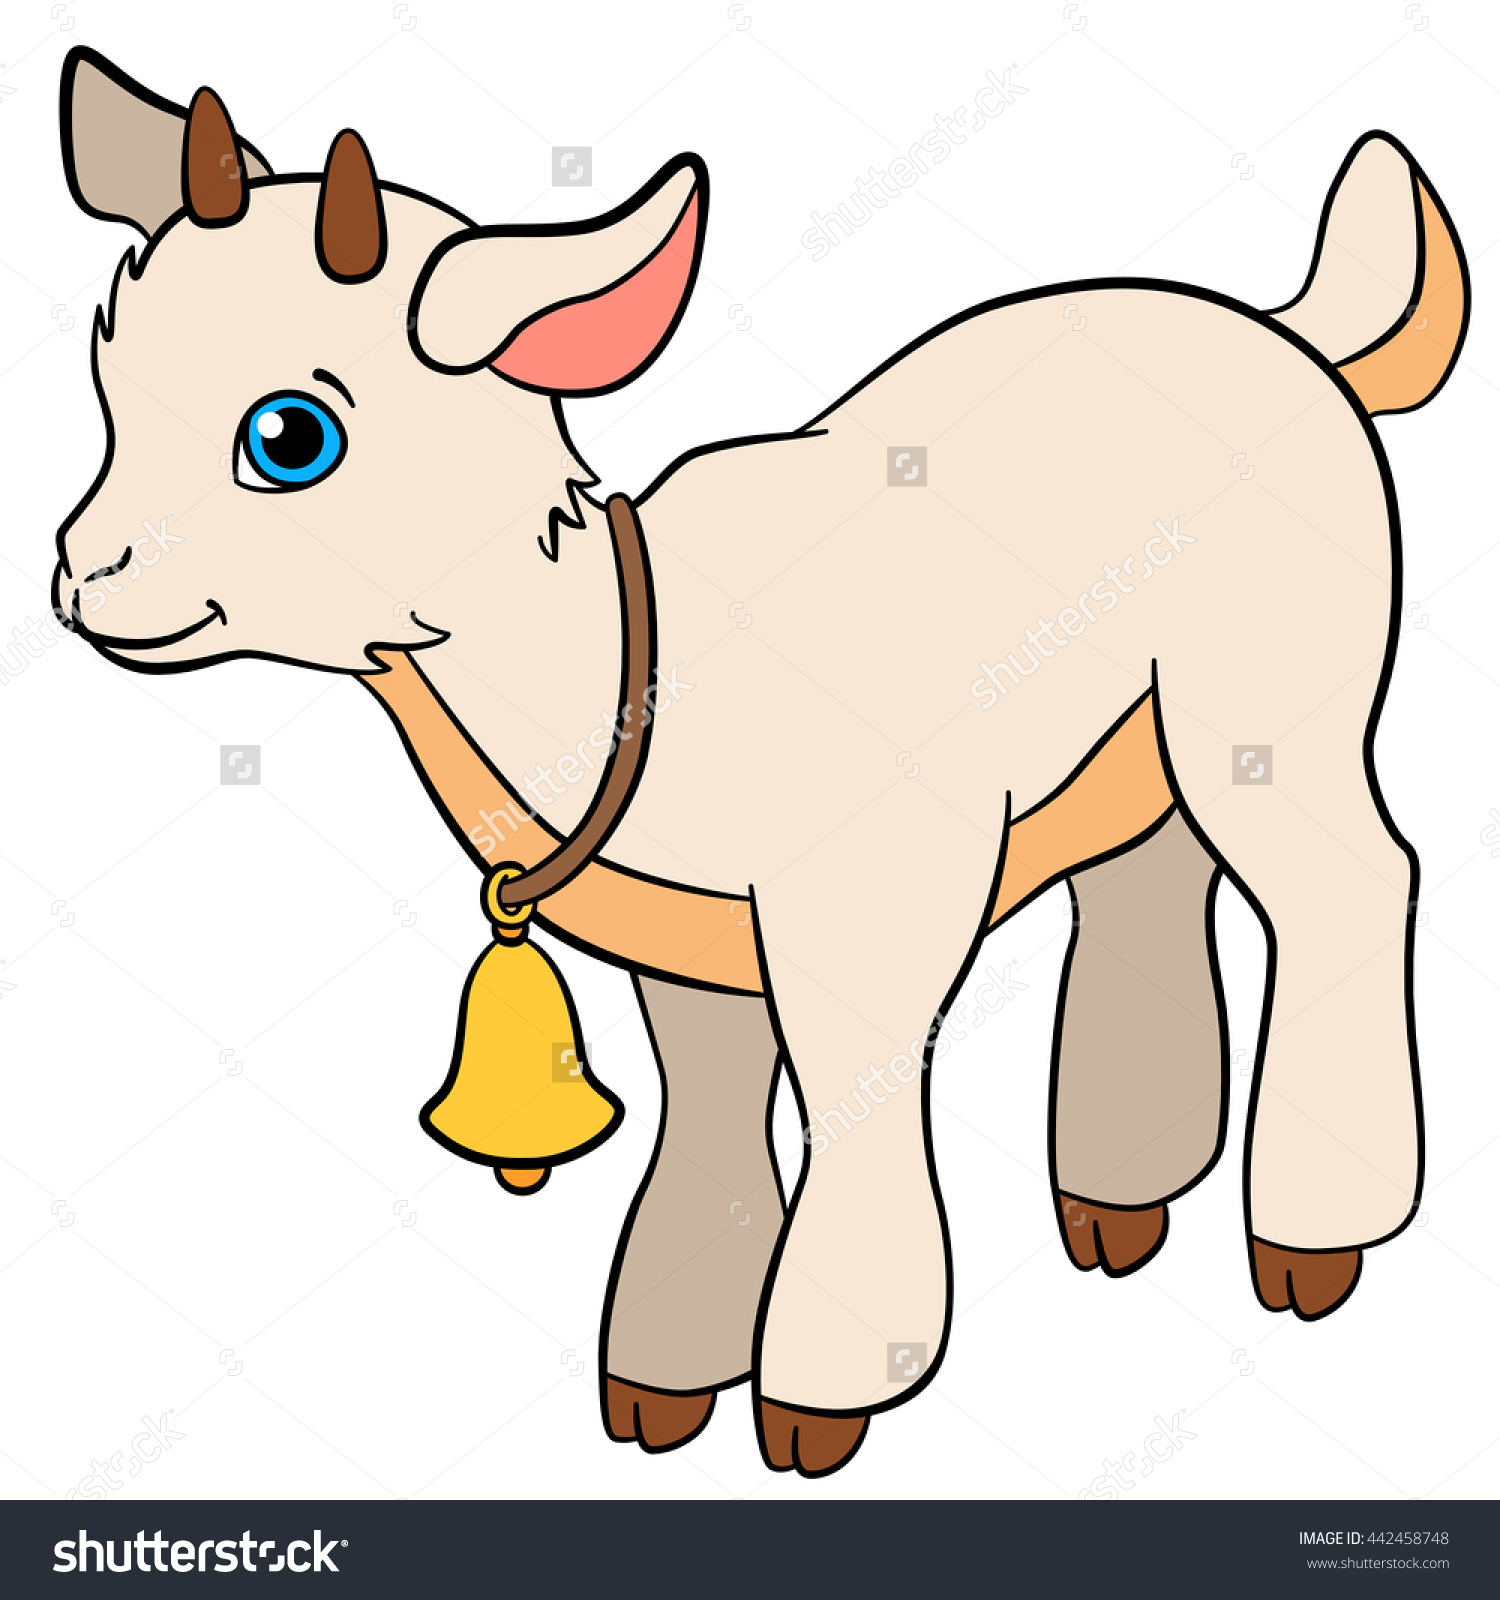 Cute baby goat clipart.